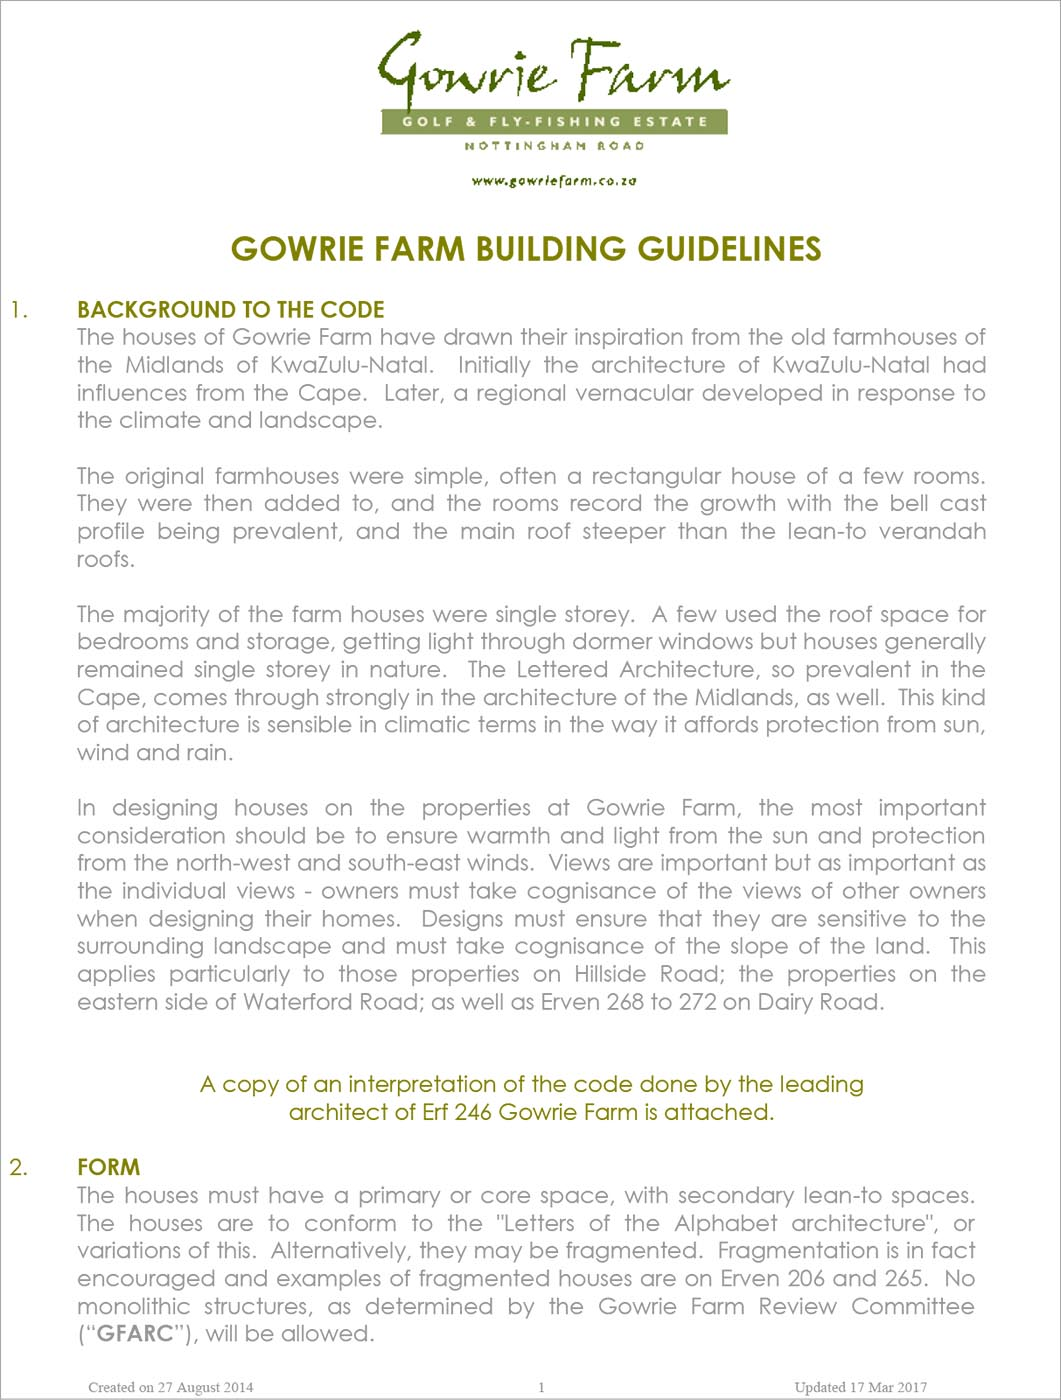 BUILDING GUIDELINES FOR GOWRIE FARM